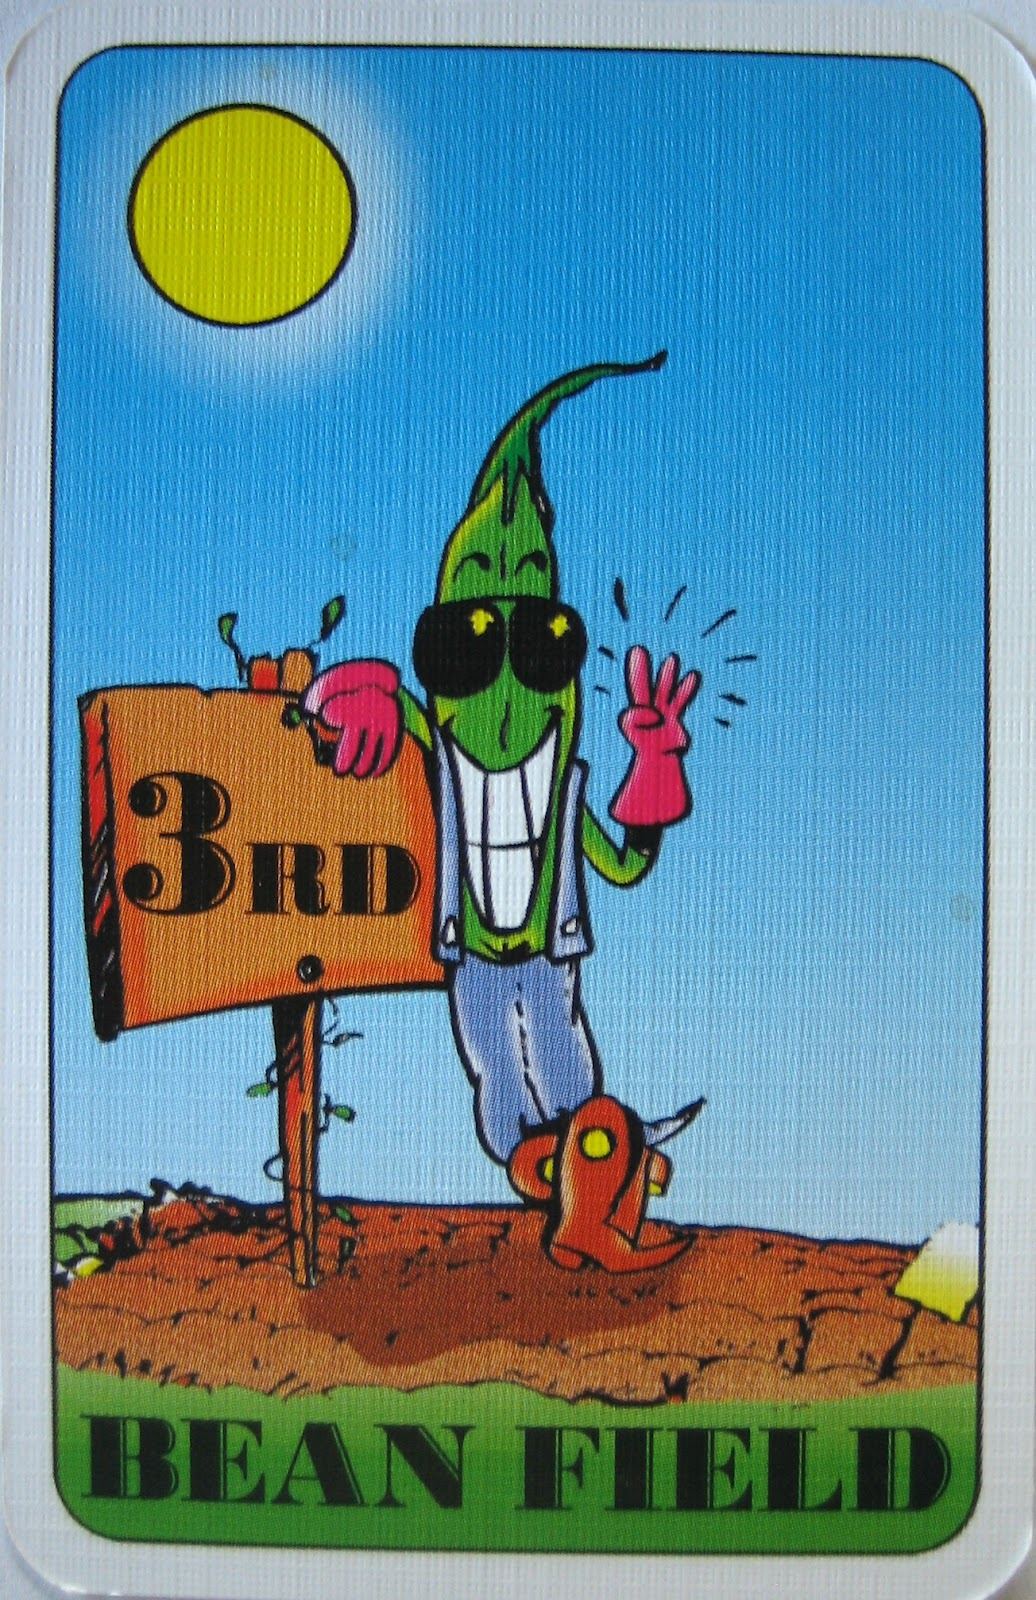 The Card for The 3rd Bean Field